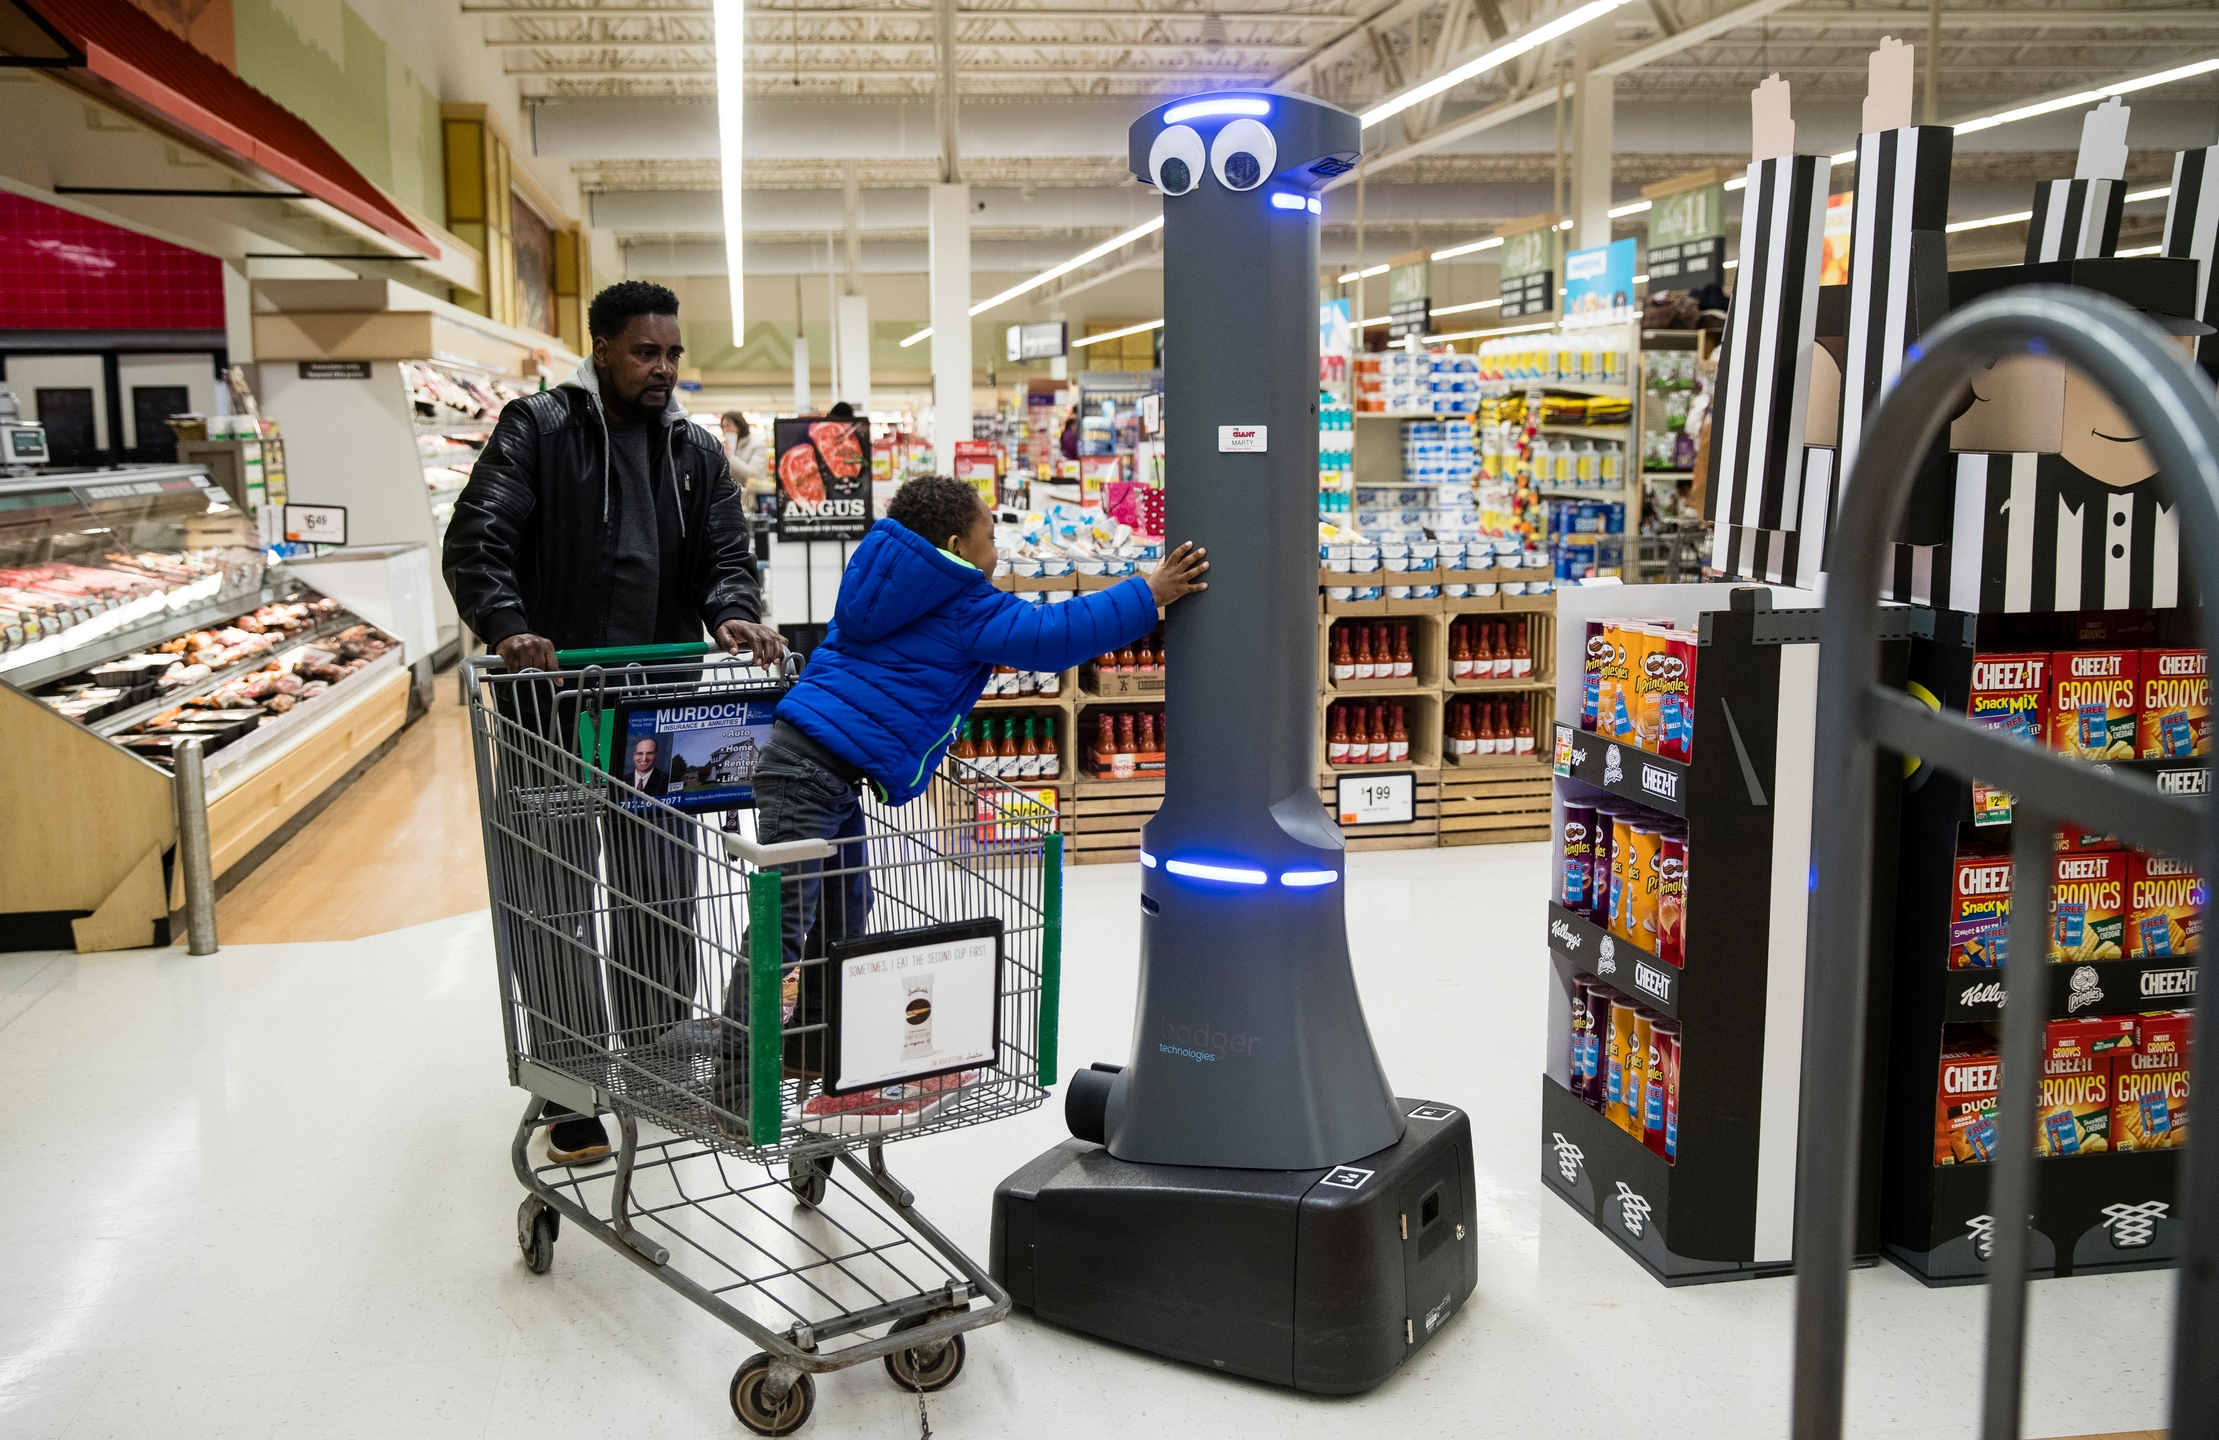 Marty_The_Grocery_Robot_59197-159532.jpg63817374